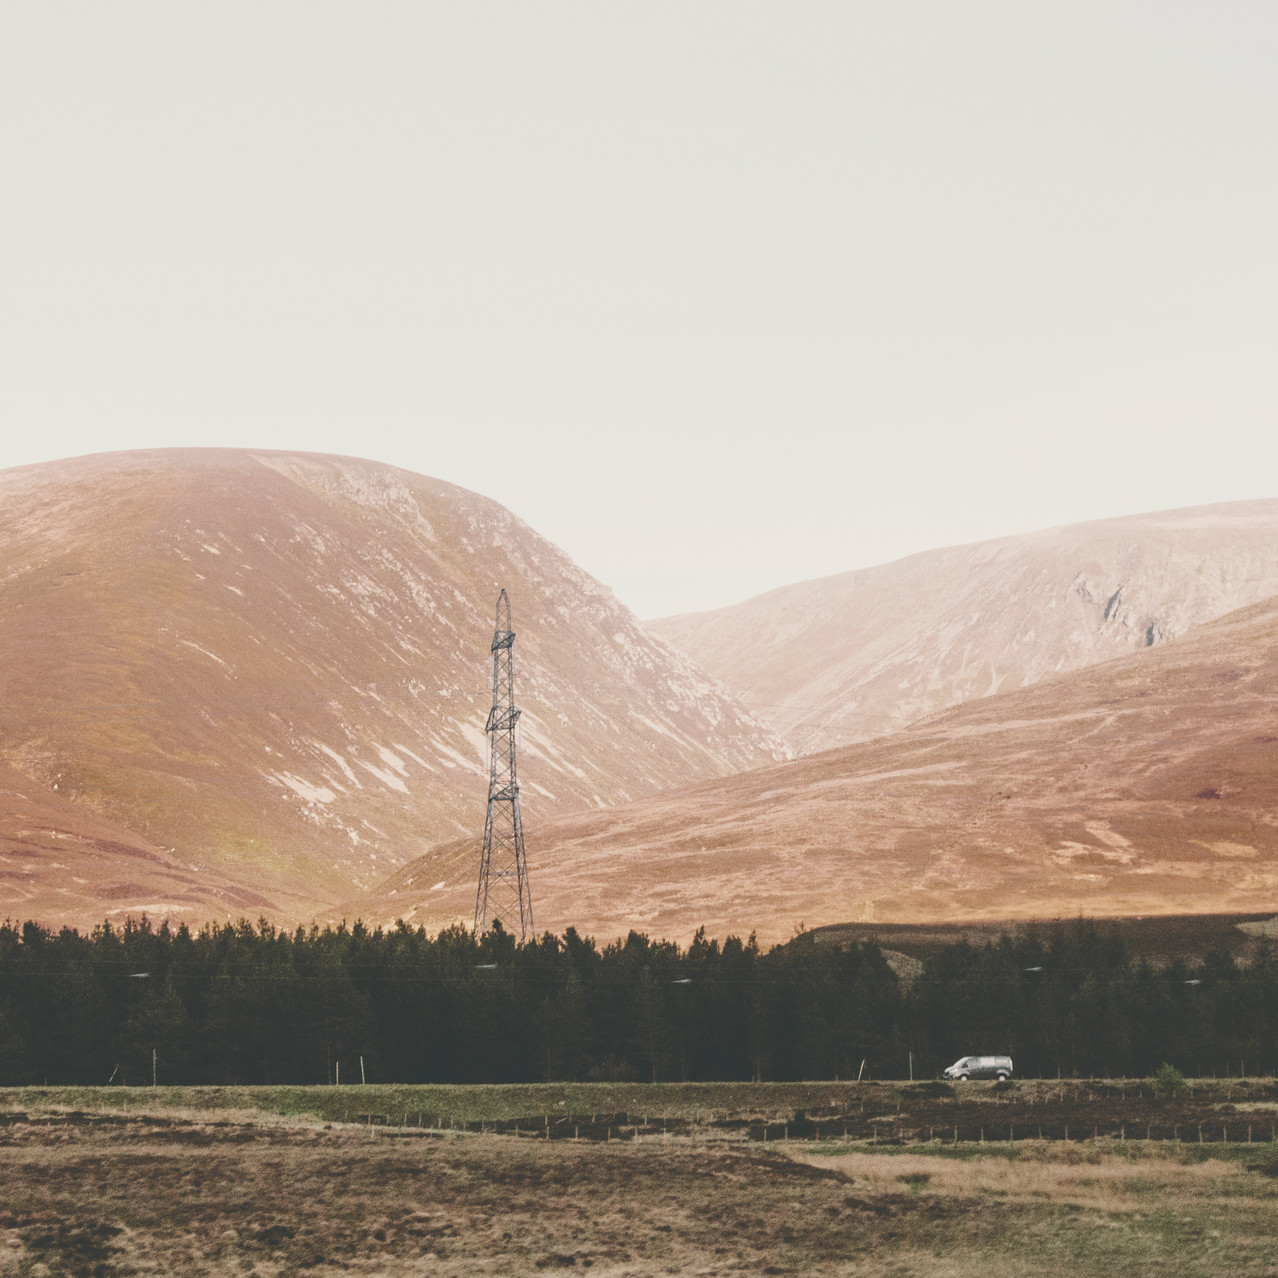 The view from the train (Edinburgh - Inverness) on Scottish Highlands.